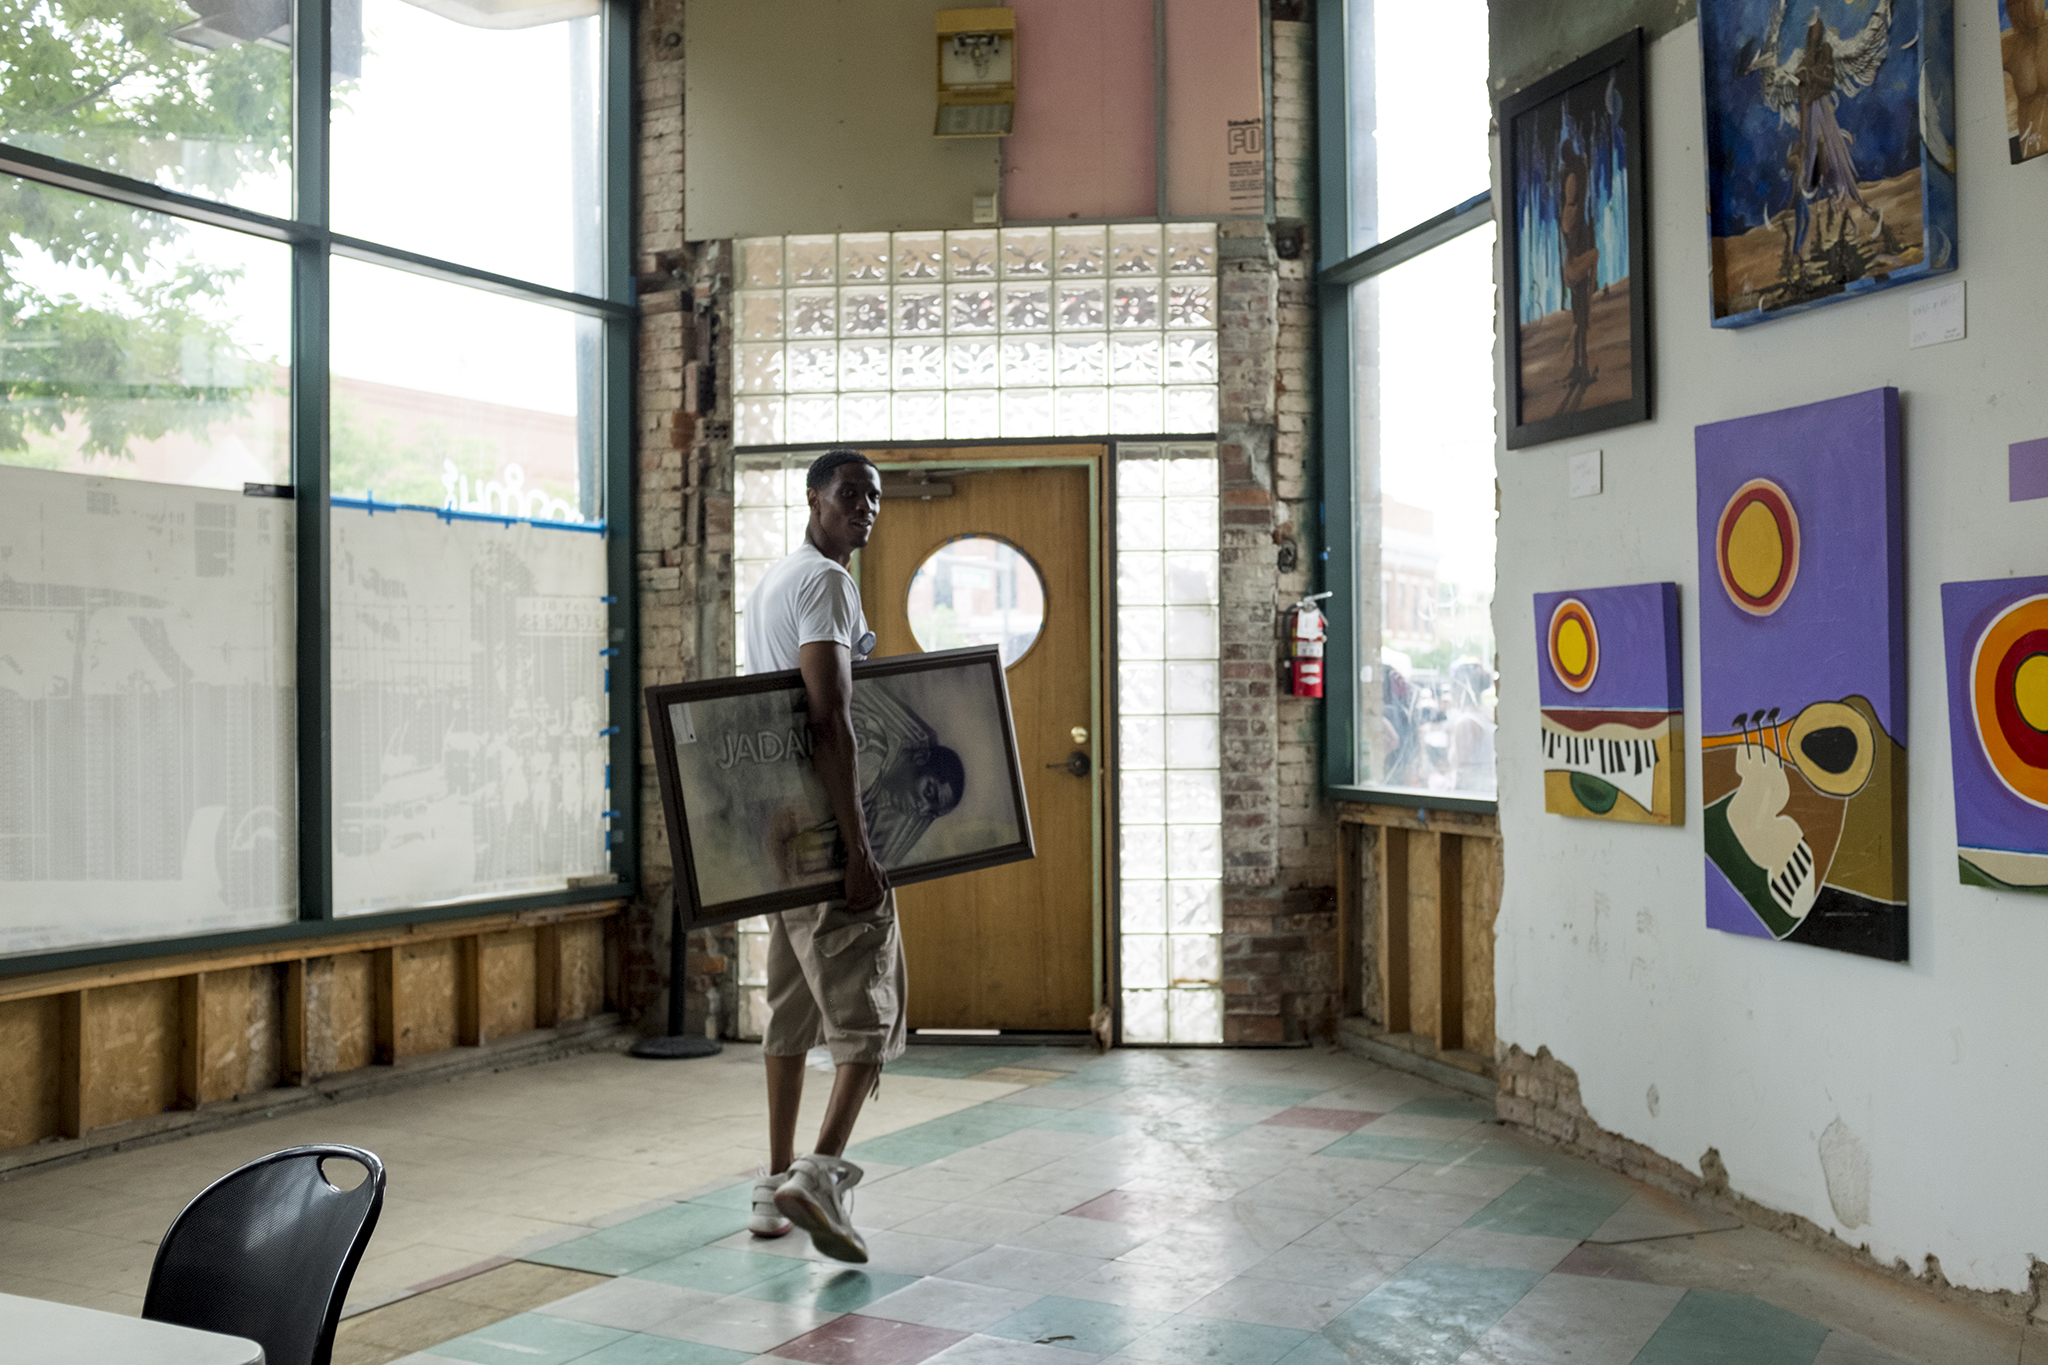 Norman Harris Jr. stands inside the Rossonian Hotel, of which he is a development partner, during Five Points' annual Juneteenth celebration, June 16, 2018.